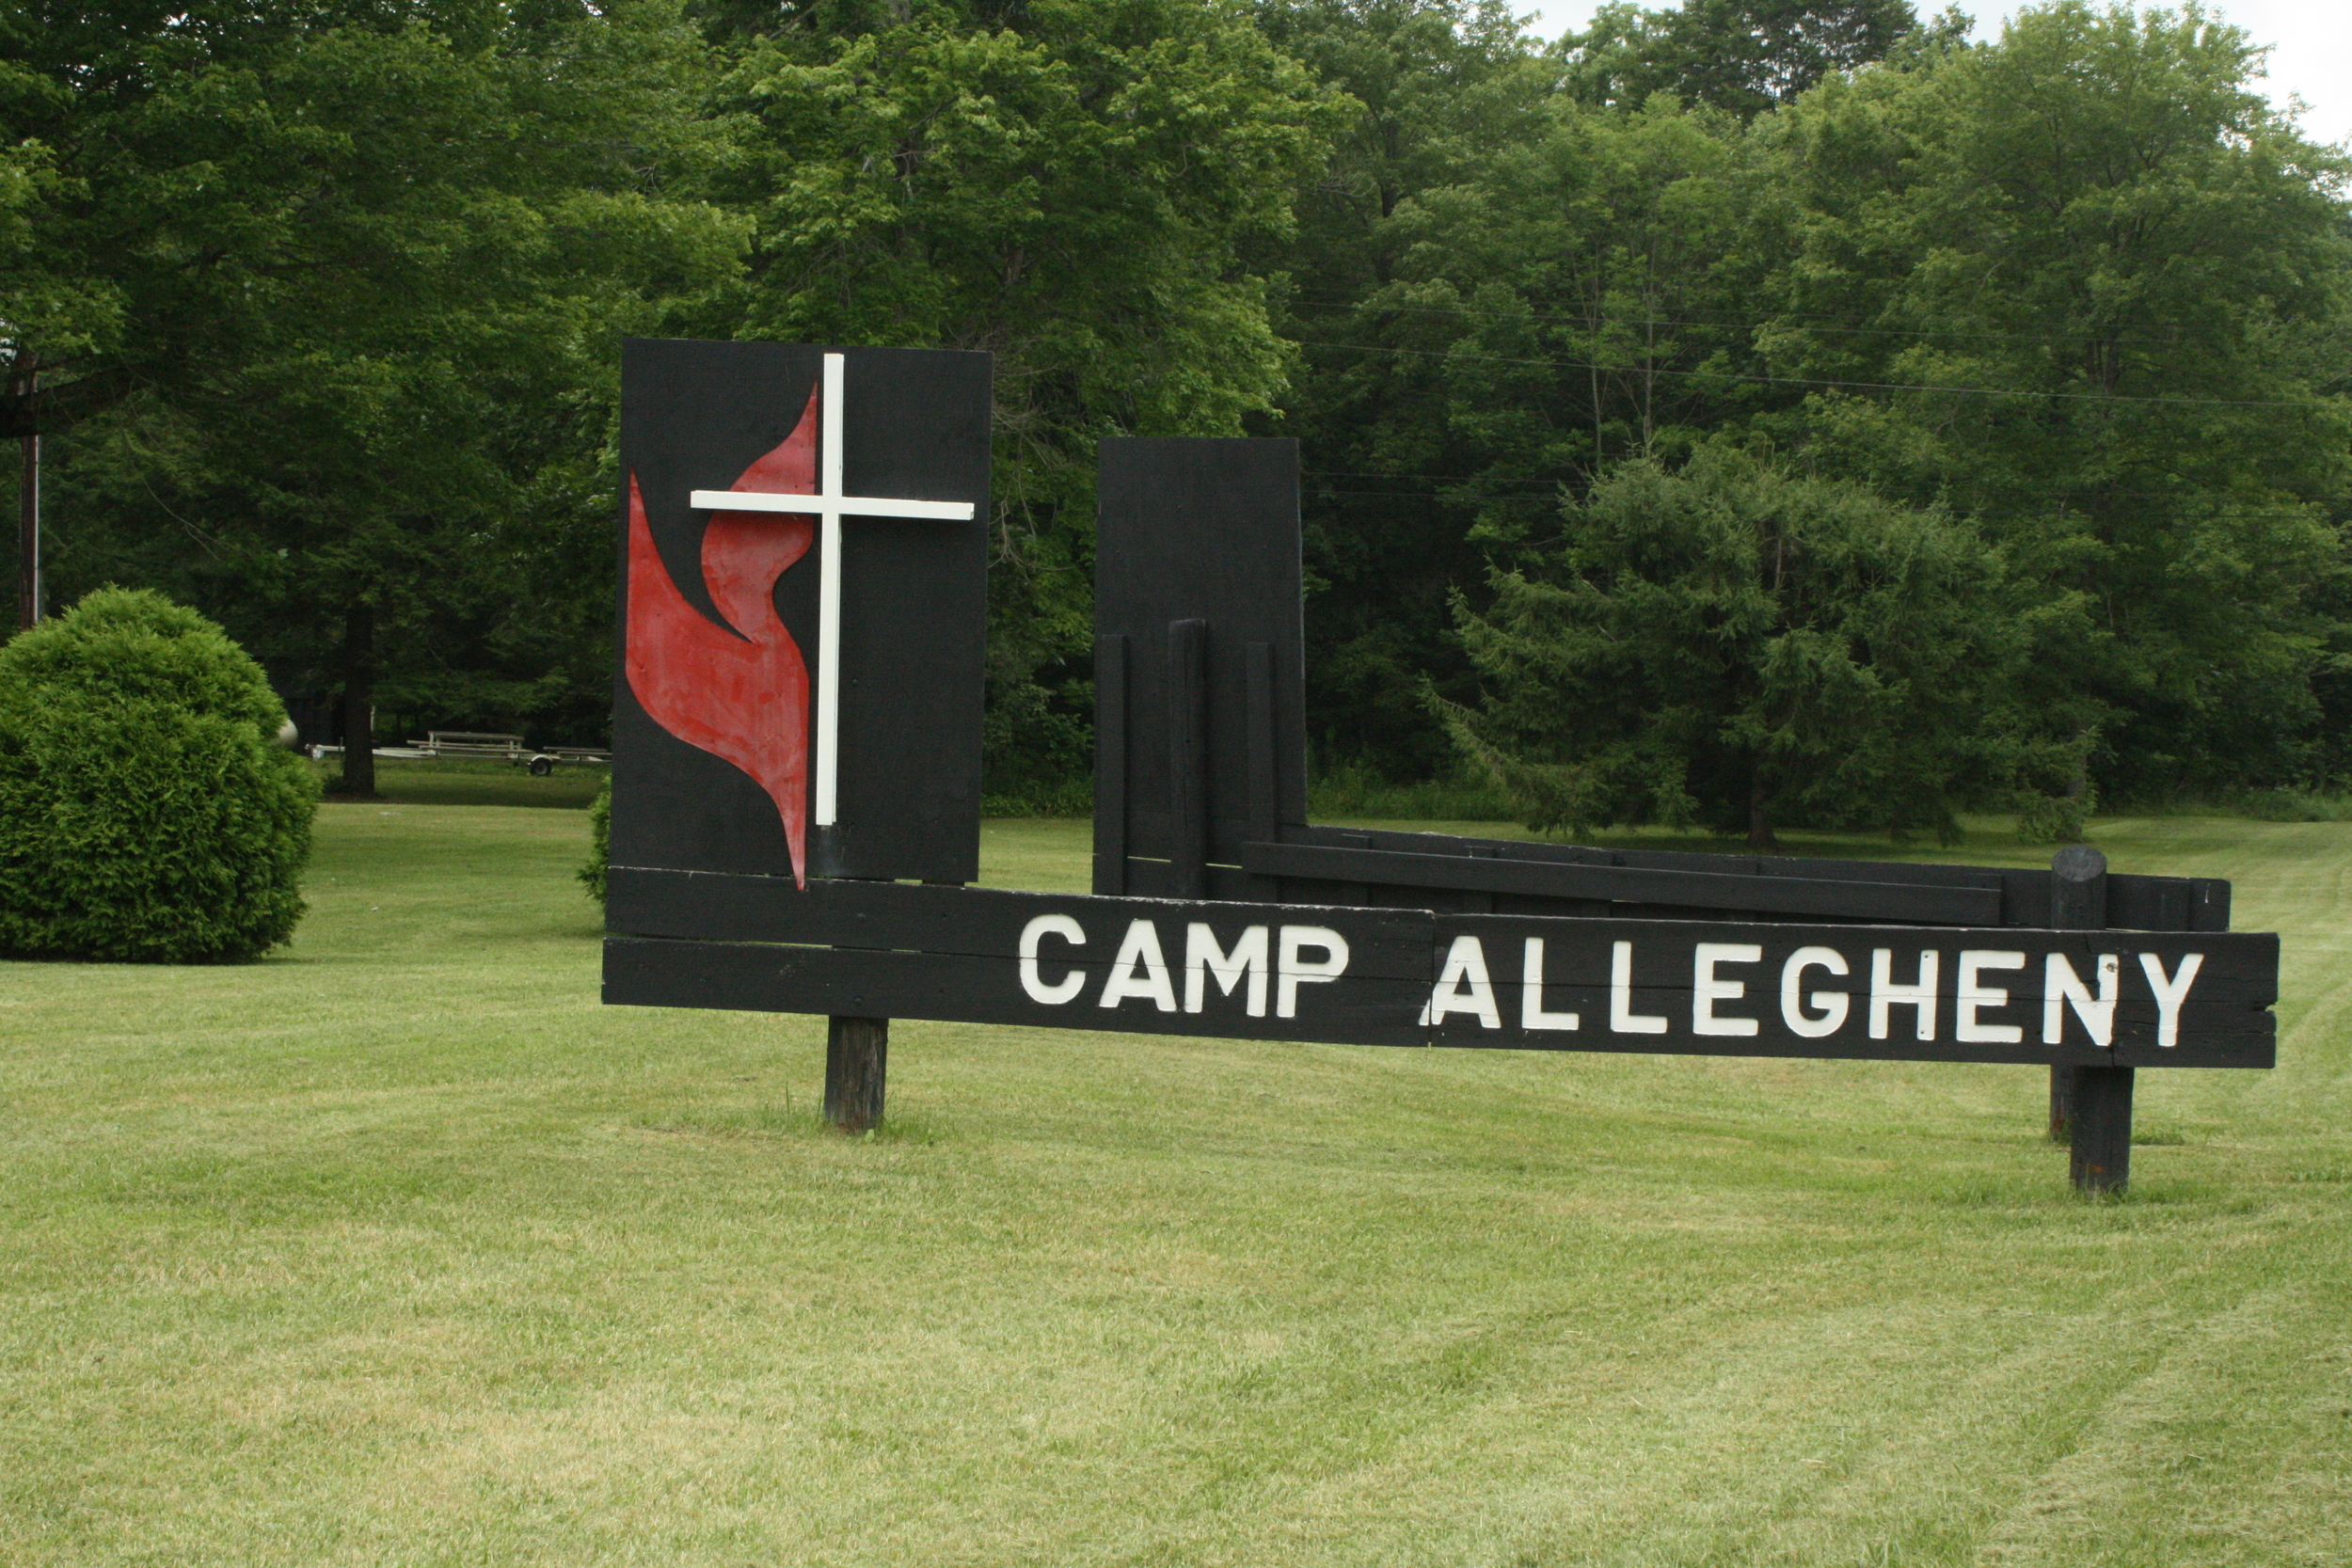 Camp Allegheny